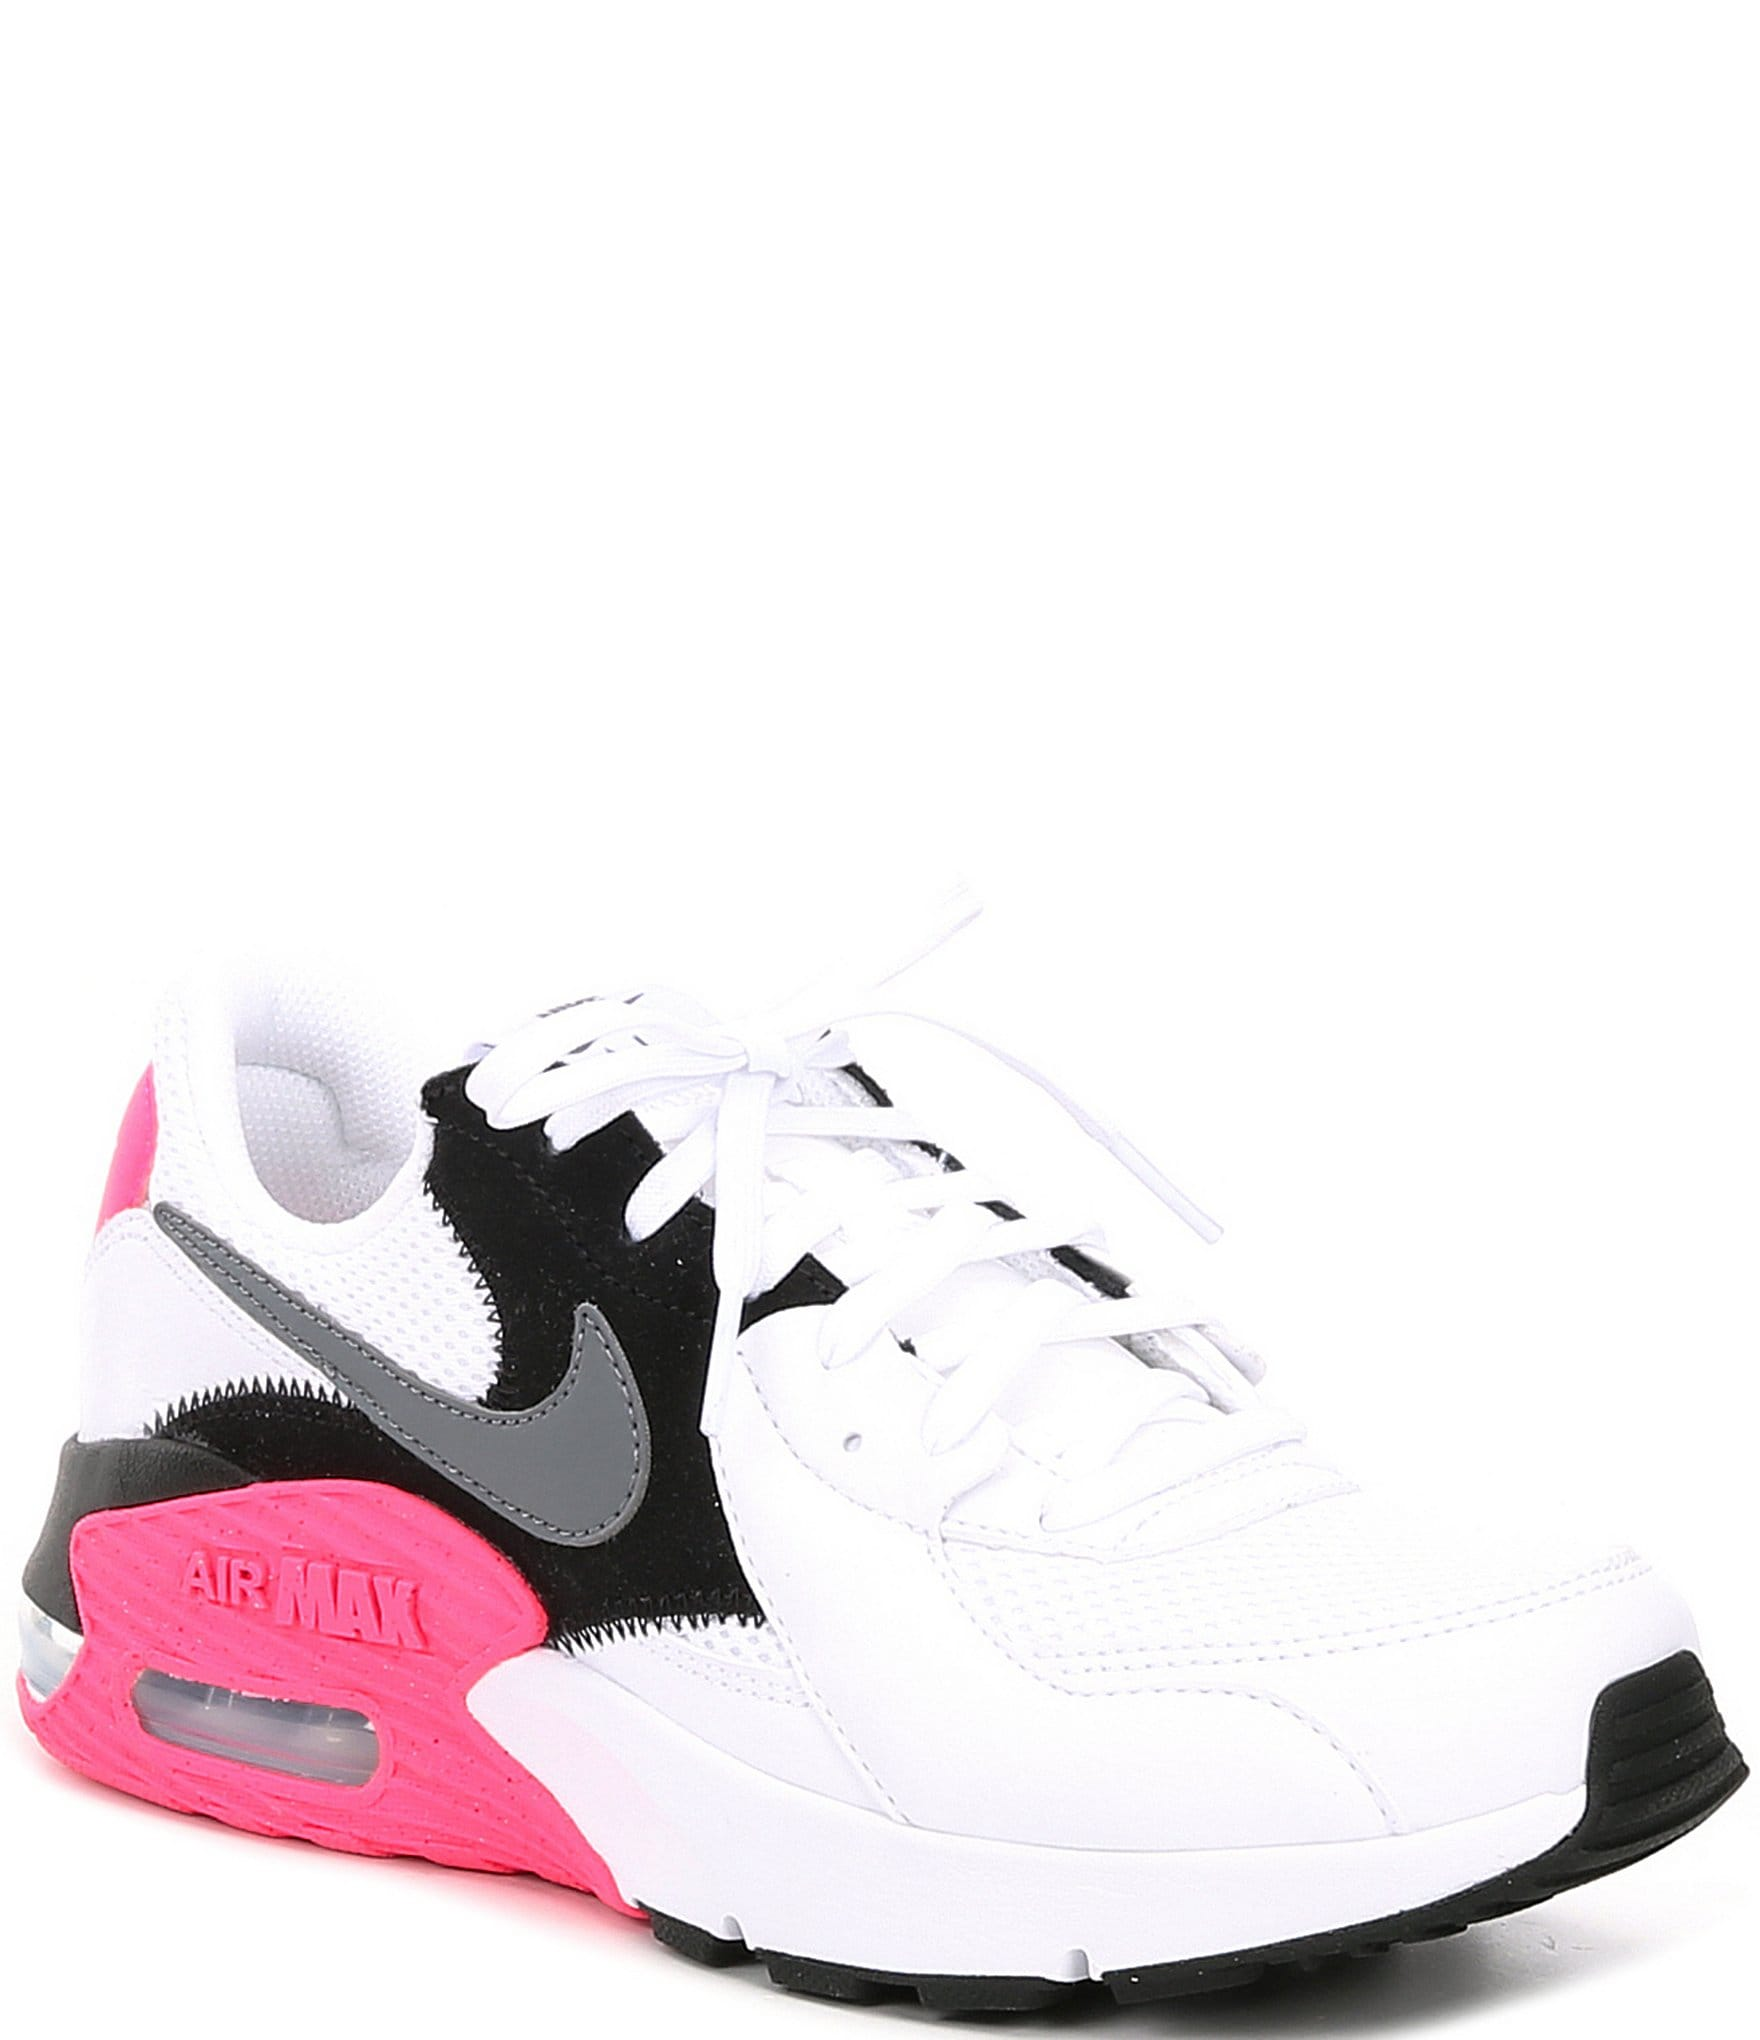 Nike Women's Air Max Excee Lifestyle Shoes